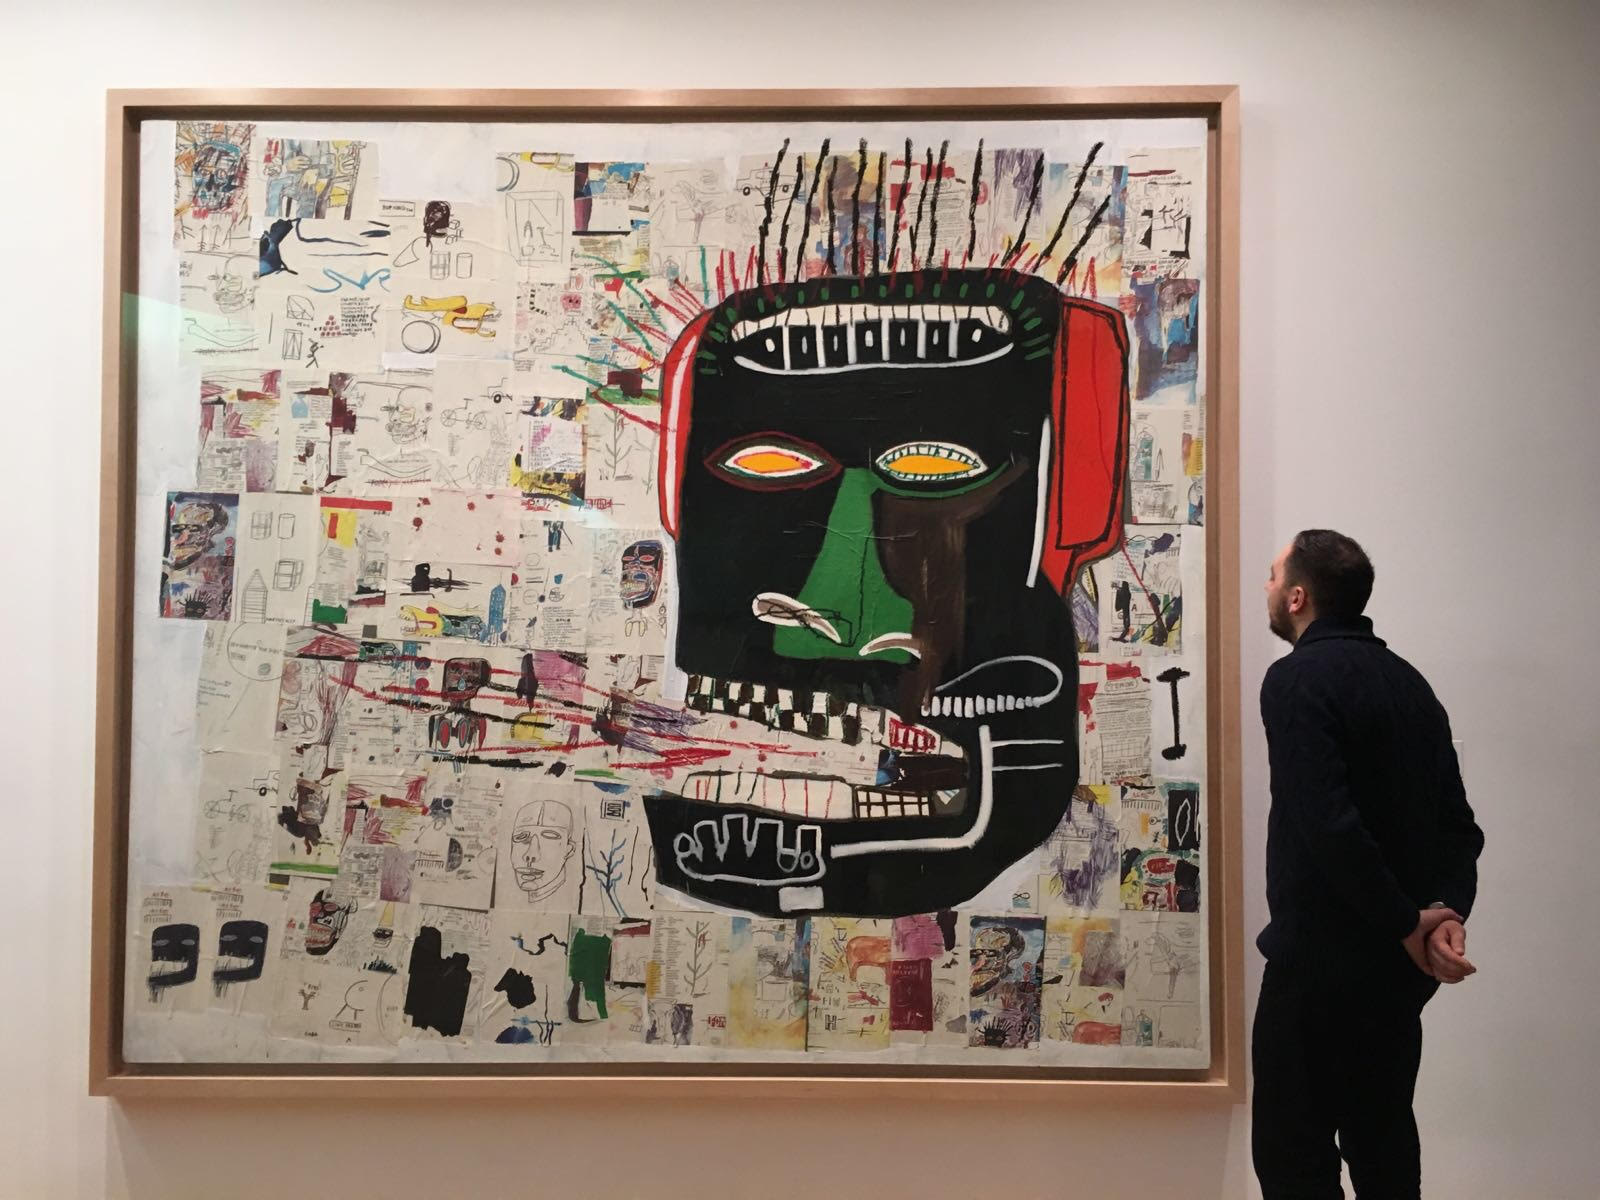 Zaid admiring the sheer scale of Basquiat's 'Glenn' (1984), at the MoMA in New York.